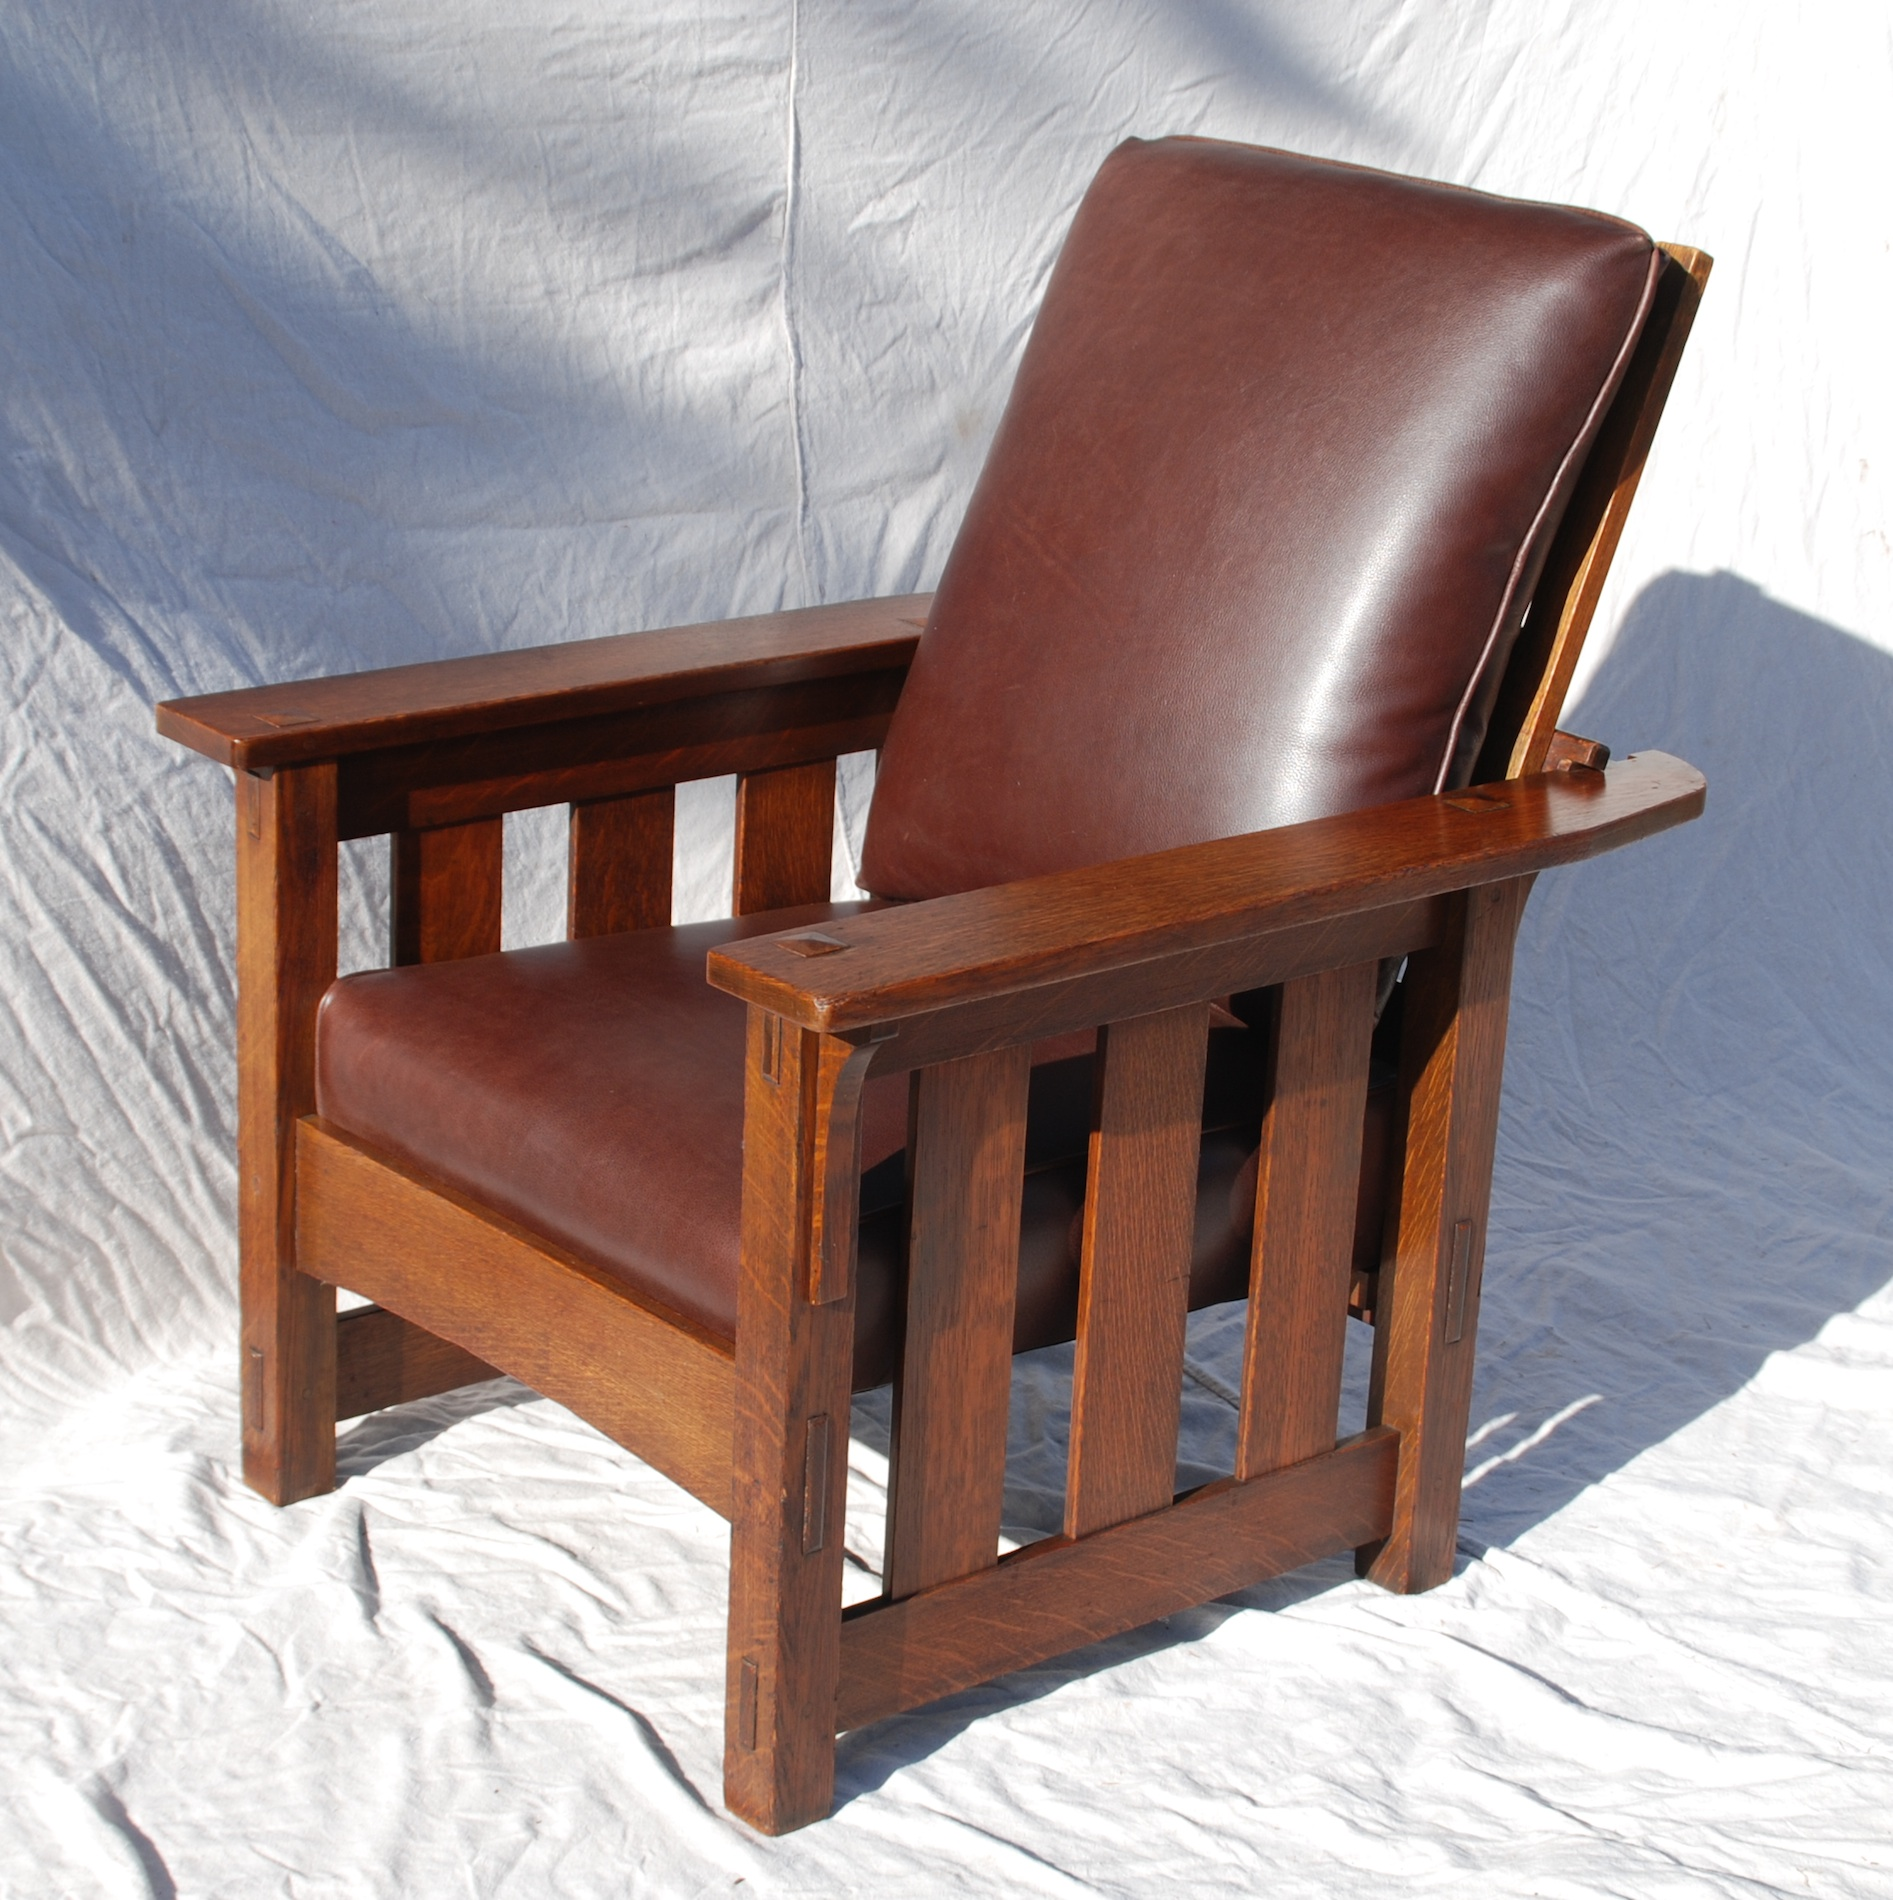 Superior Voorhees Craftsman Mission Oak Furniture   Lifetime Furniture Company , Grand  Rapids Bookcase And Chair Co. Morris Chair